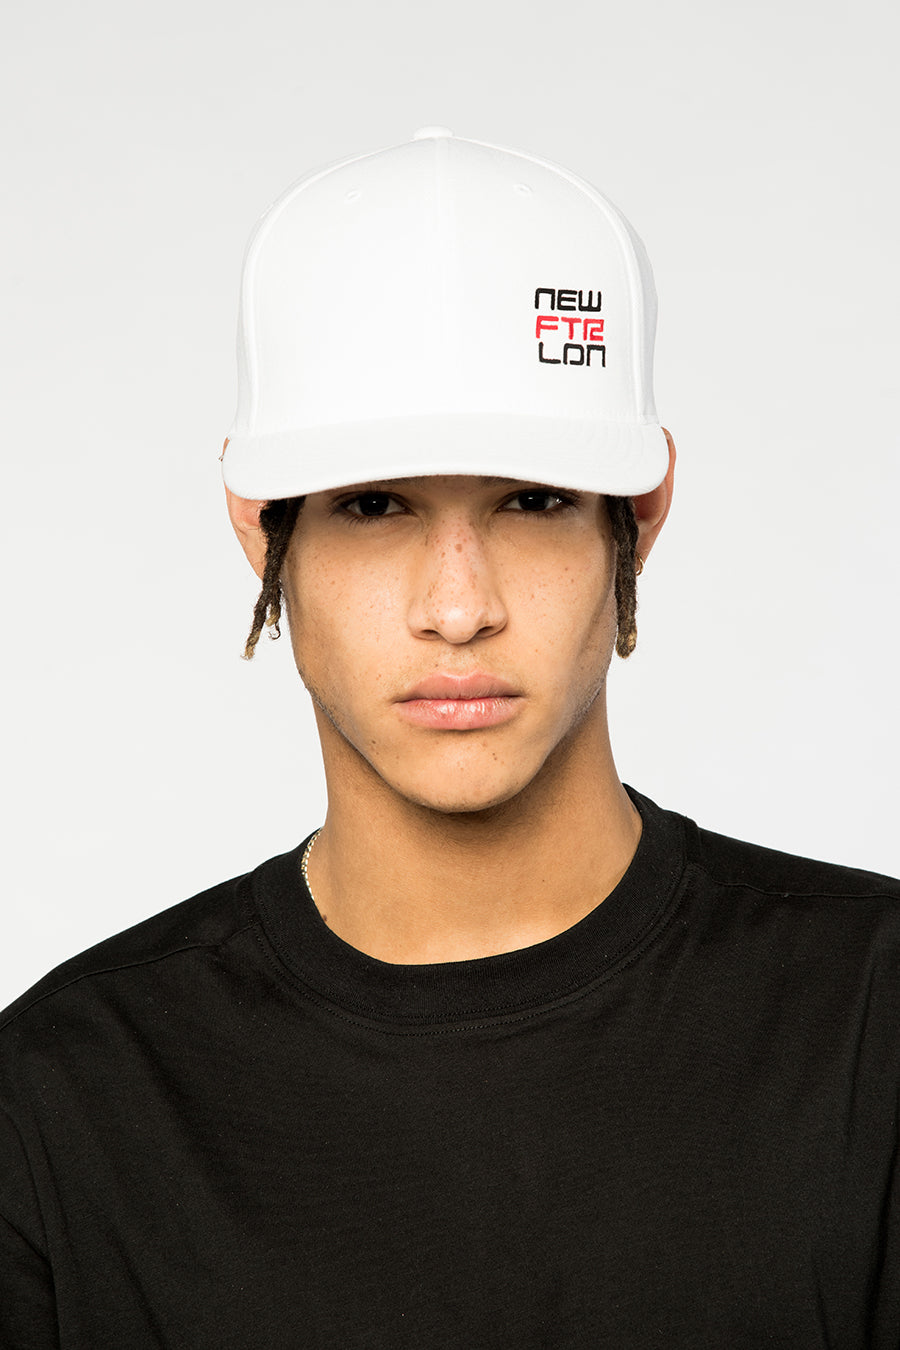 new_future_london_racer_cap_wht_1-1.jpg